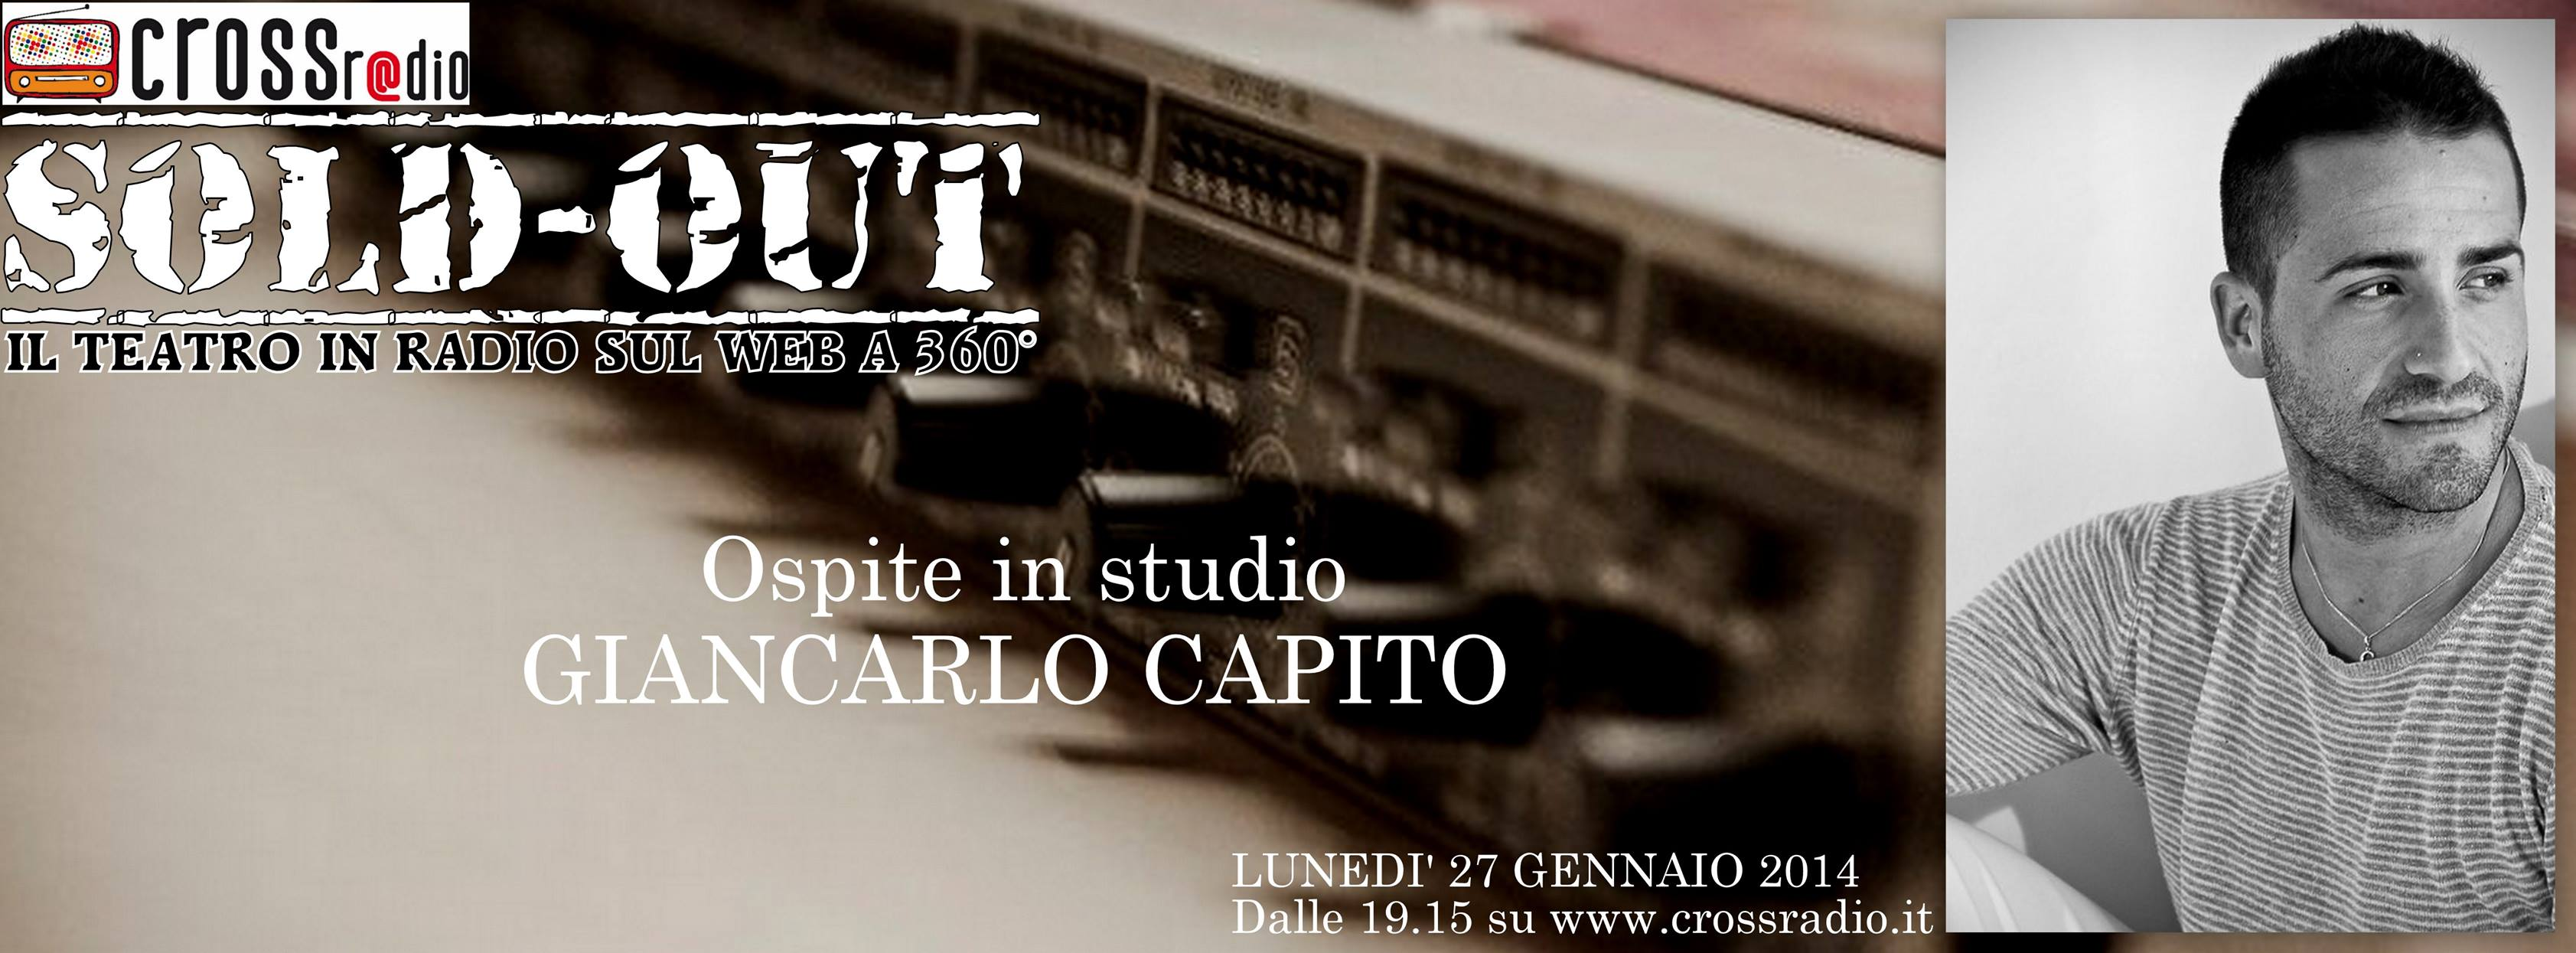 Sold Out & Giancarlo Capito